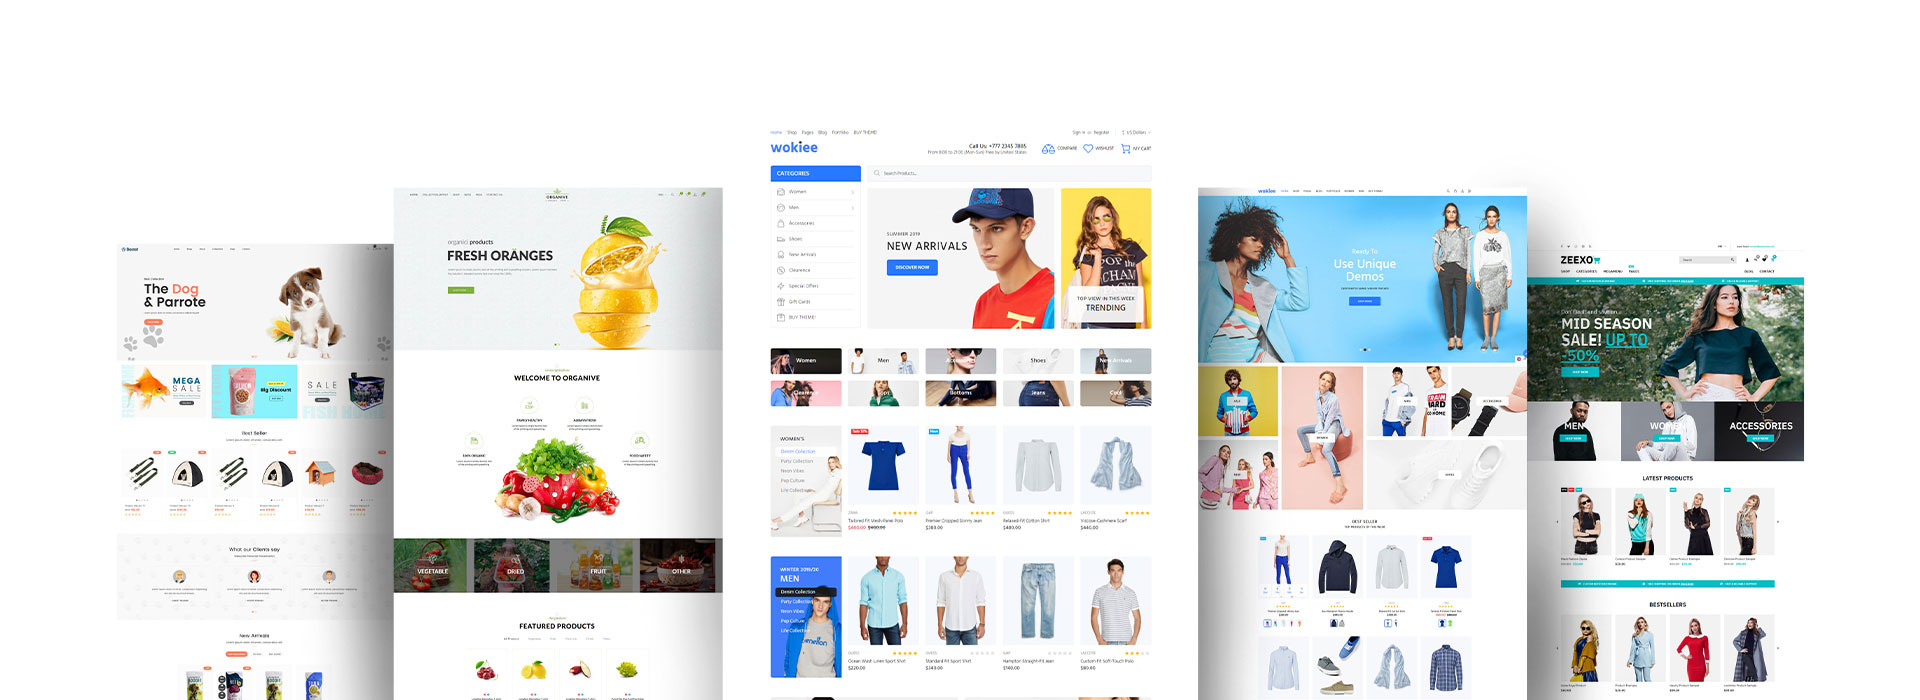 Shopify Designing Web Pages